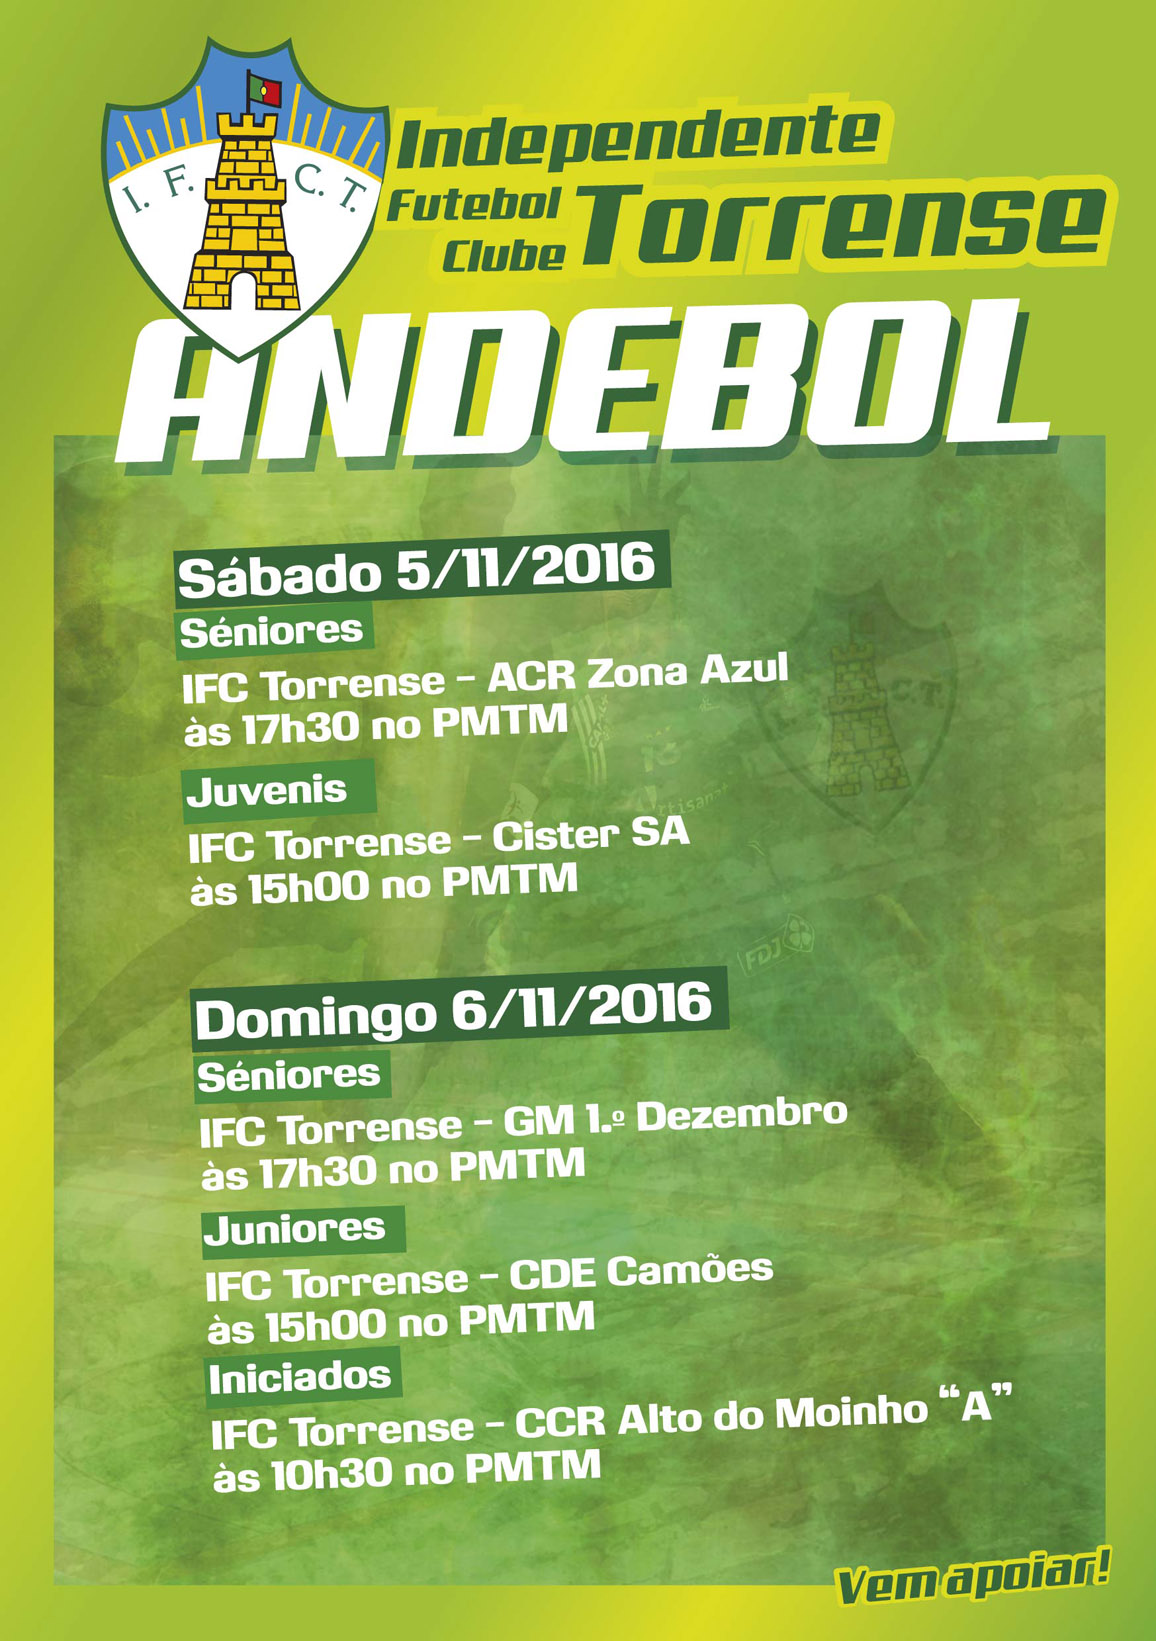 andebol 5e6Nov2016